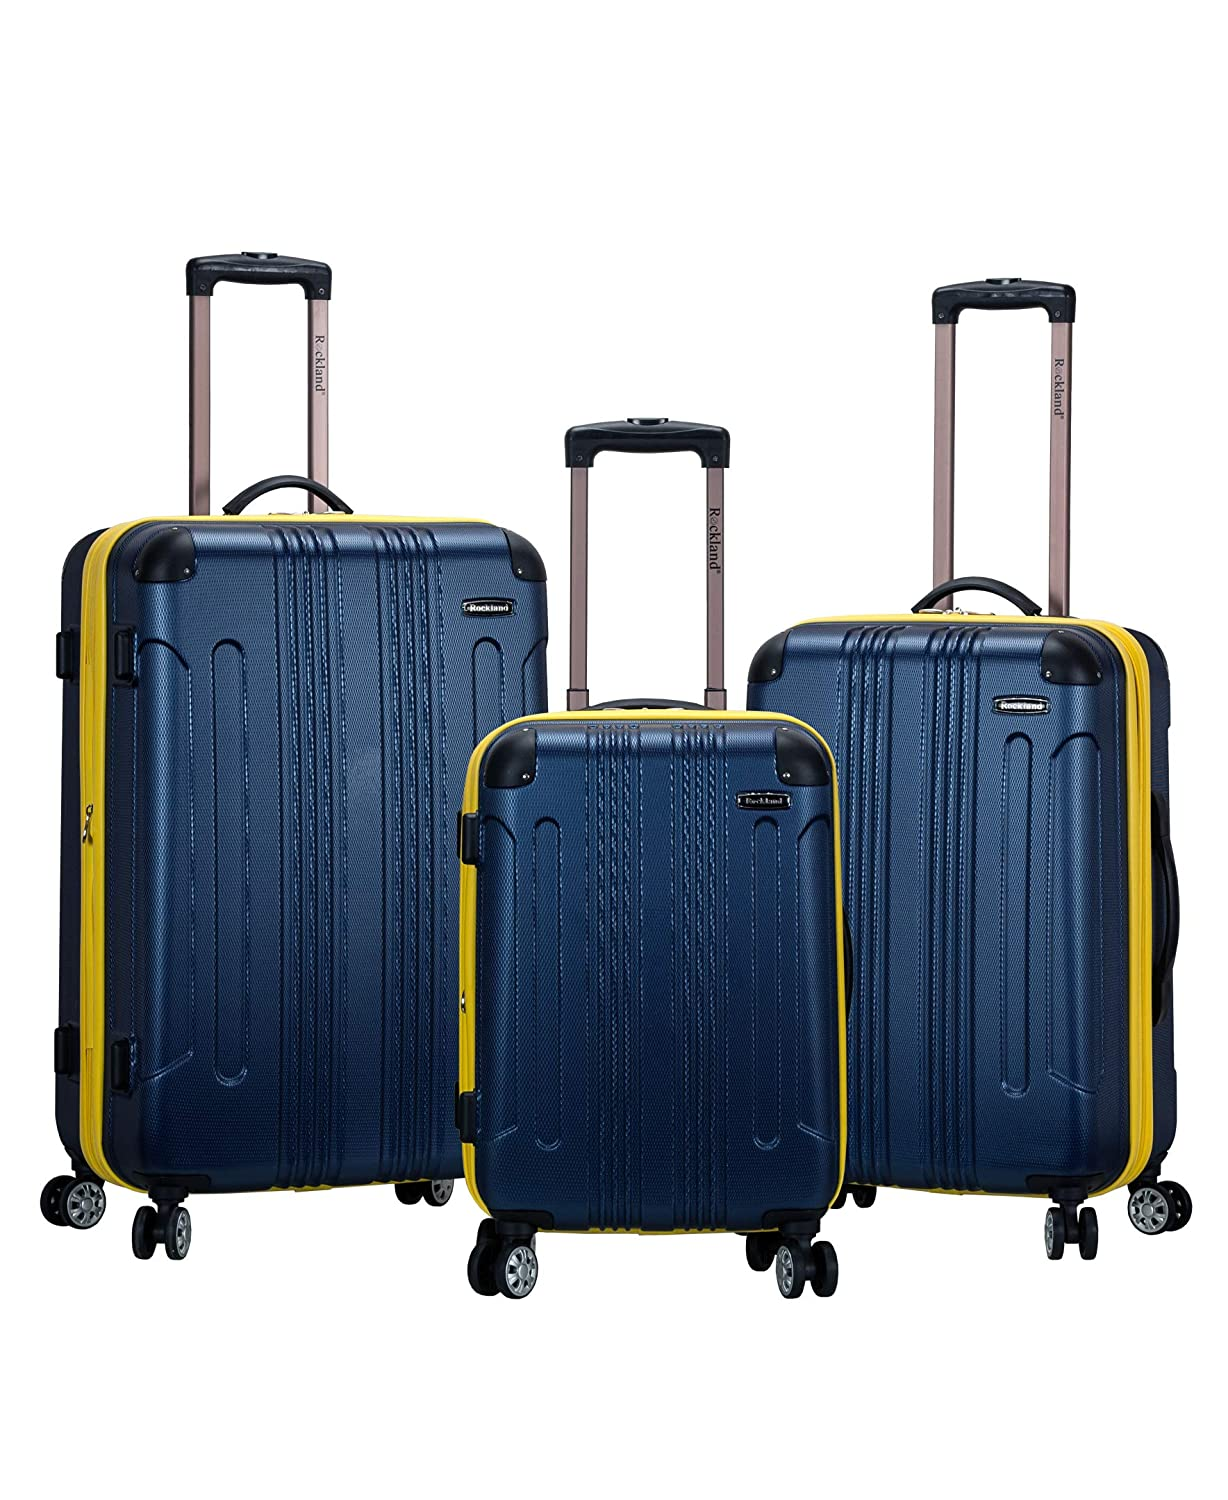 Rockland, Set di valigie Adulti, Blue (Blu) - F190-BLUE Fox Luggage